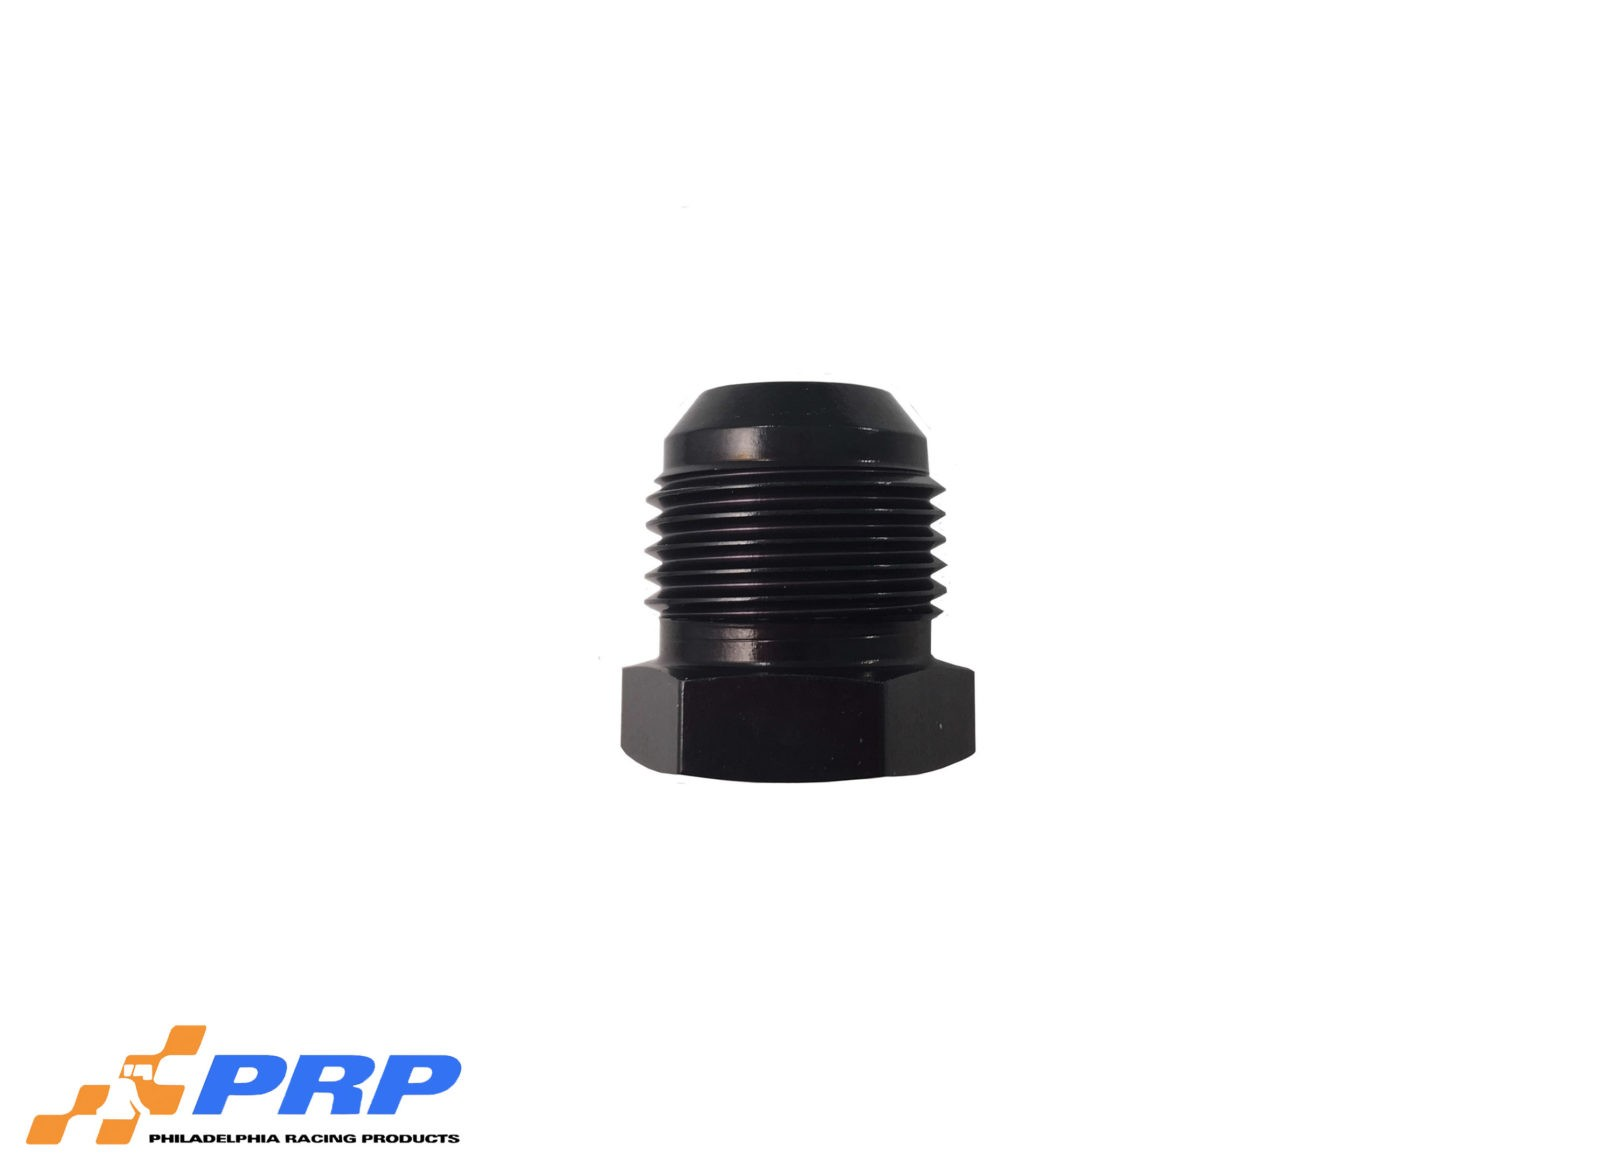 Black Flare Plugs 10-AN made by PRP Racing Products